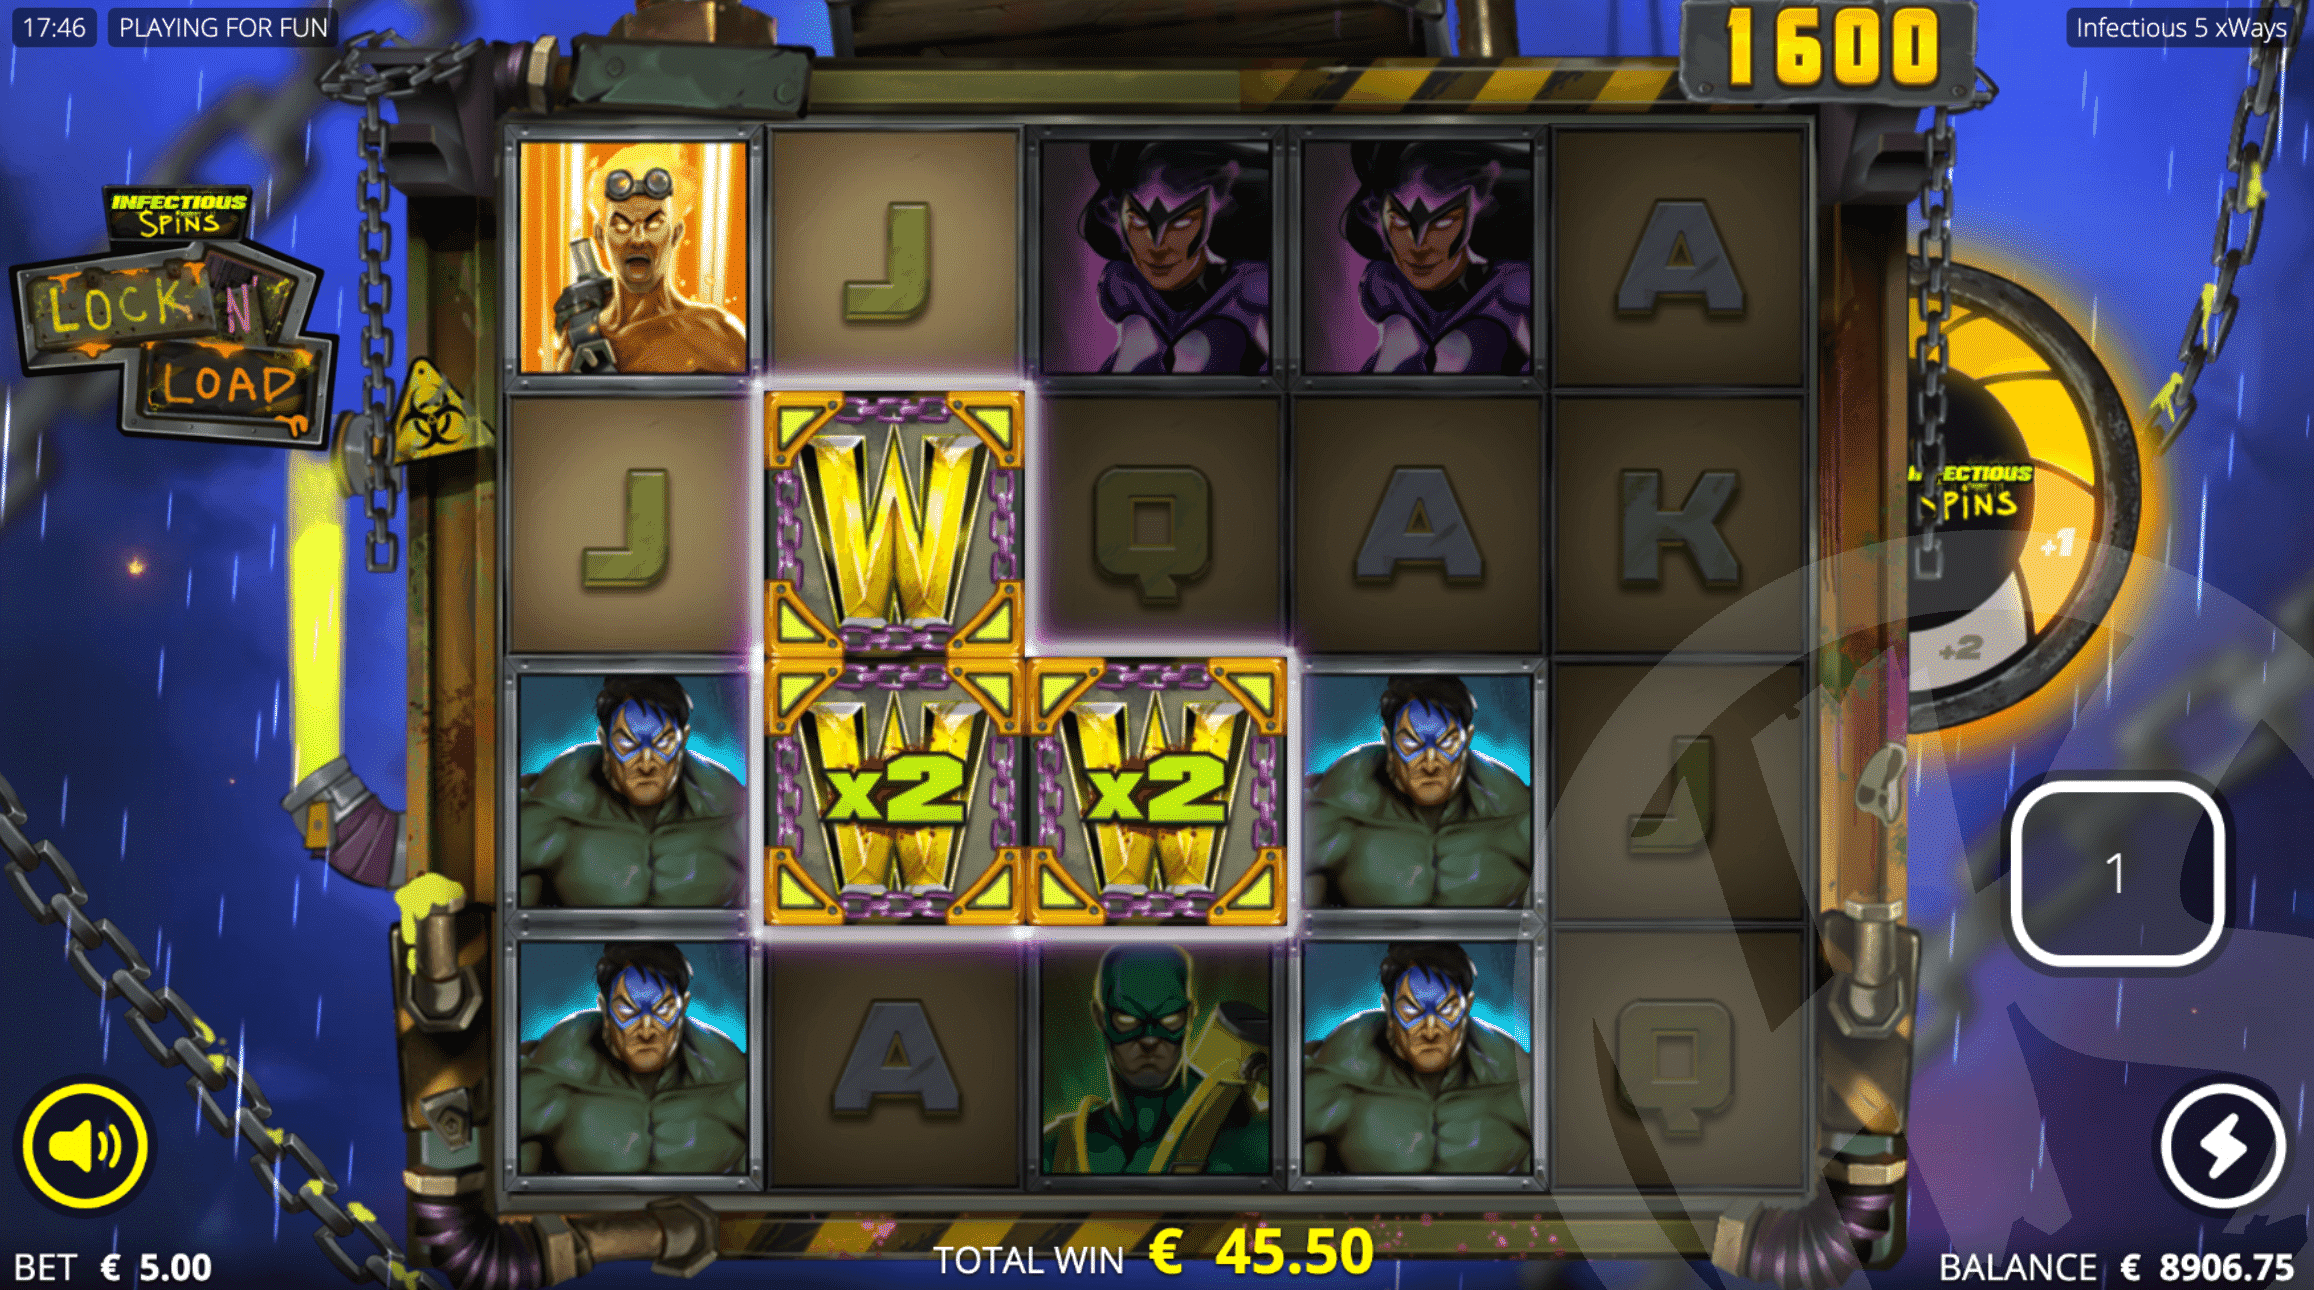 Infectious 5 xWays Lock n' Load Free Spins